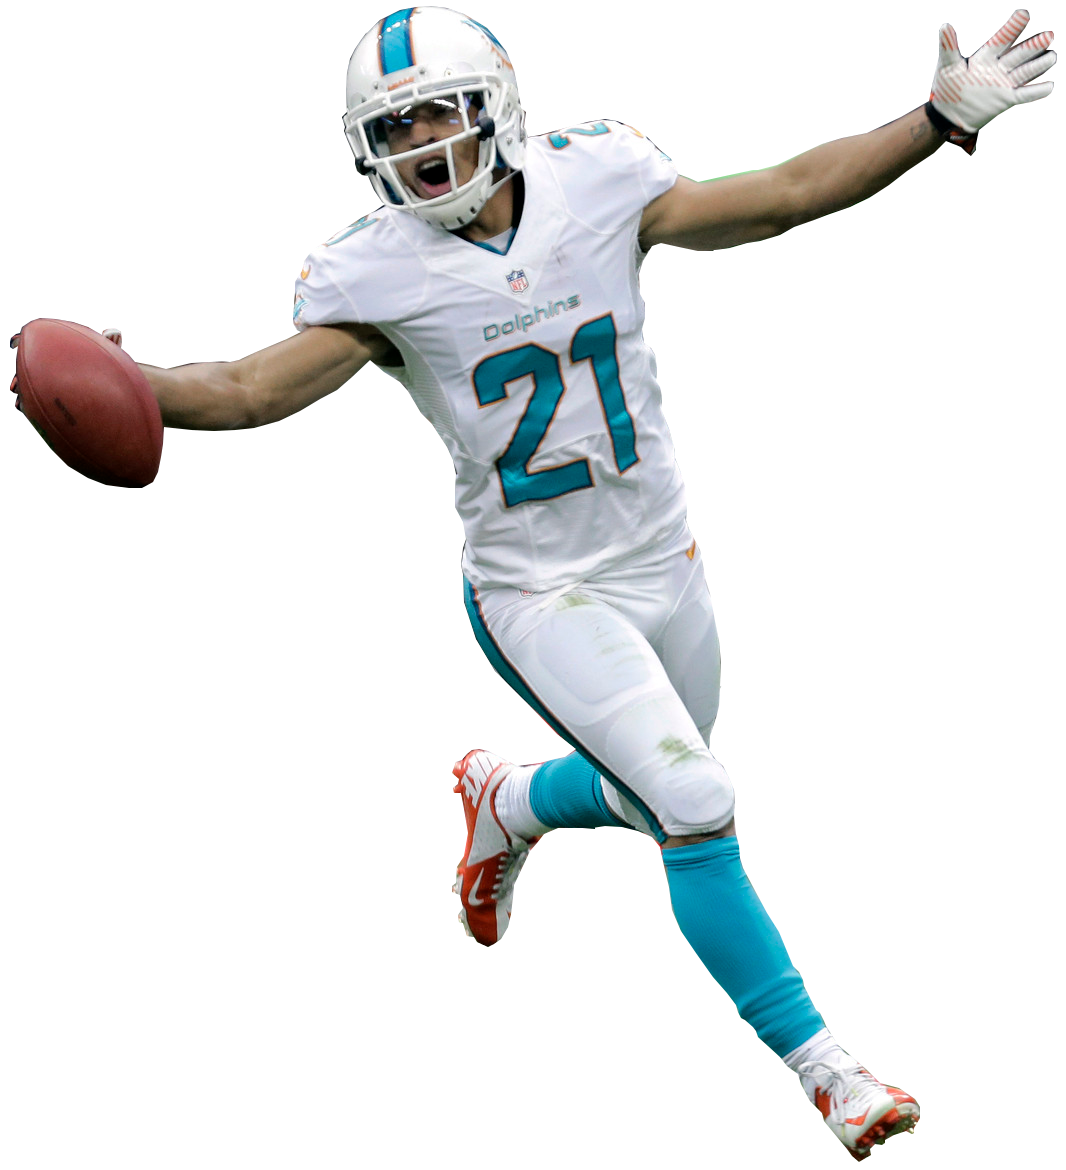 Football player running through defence clipart banner free library BRENT GRIMES CB MIAMI DOLPHINS | MIAMI DOLPHINS | Pinterest banner free library